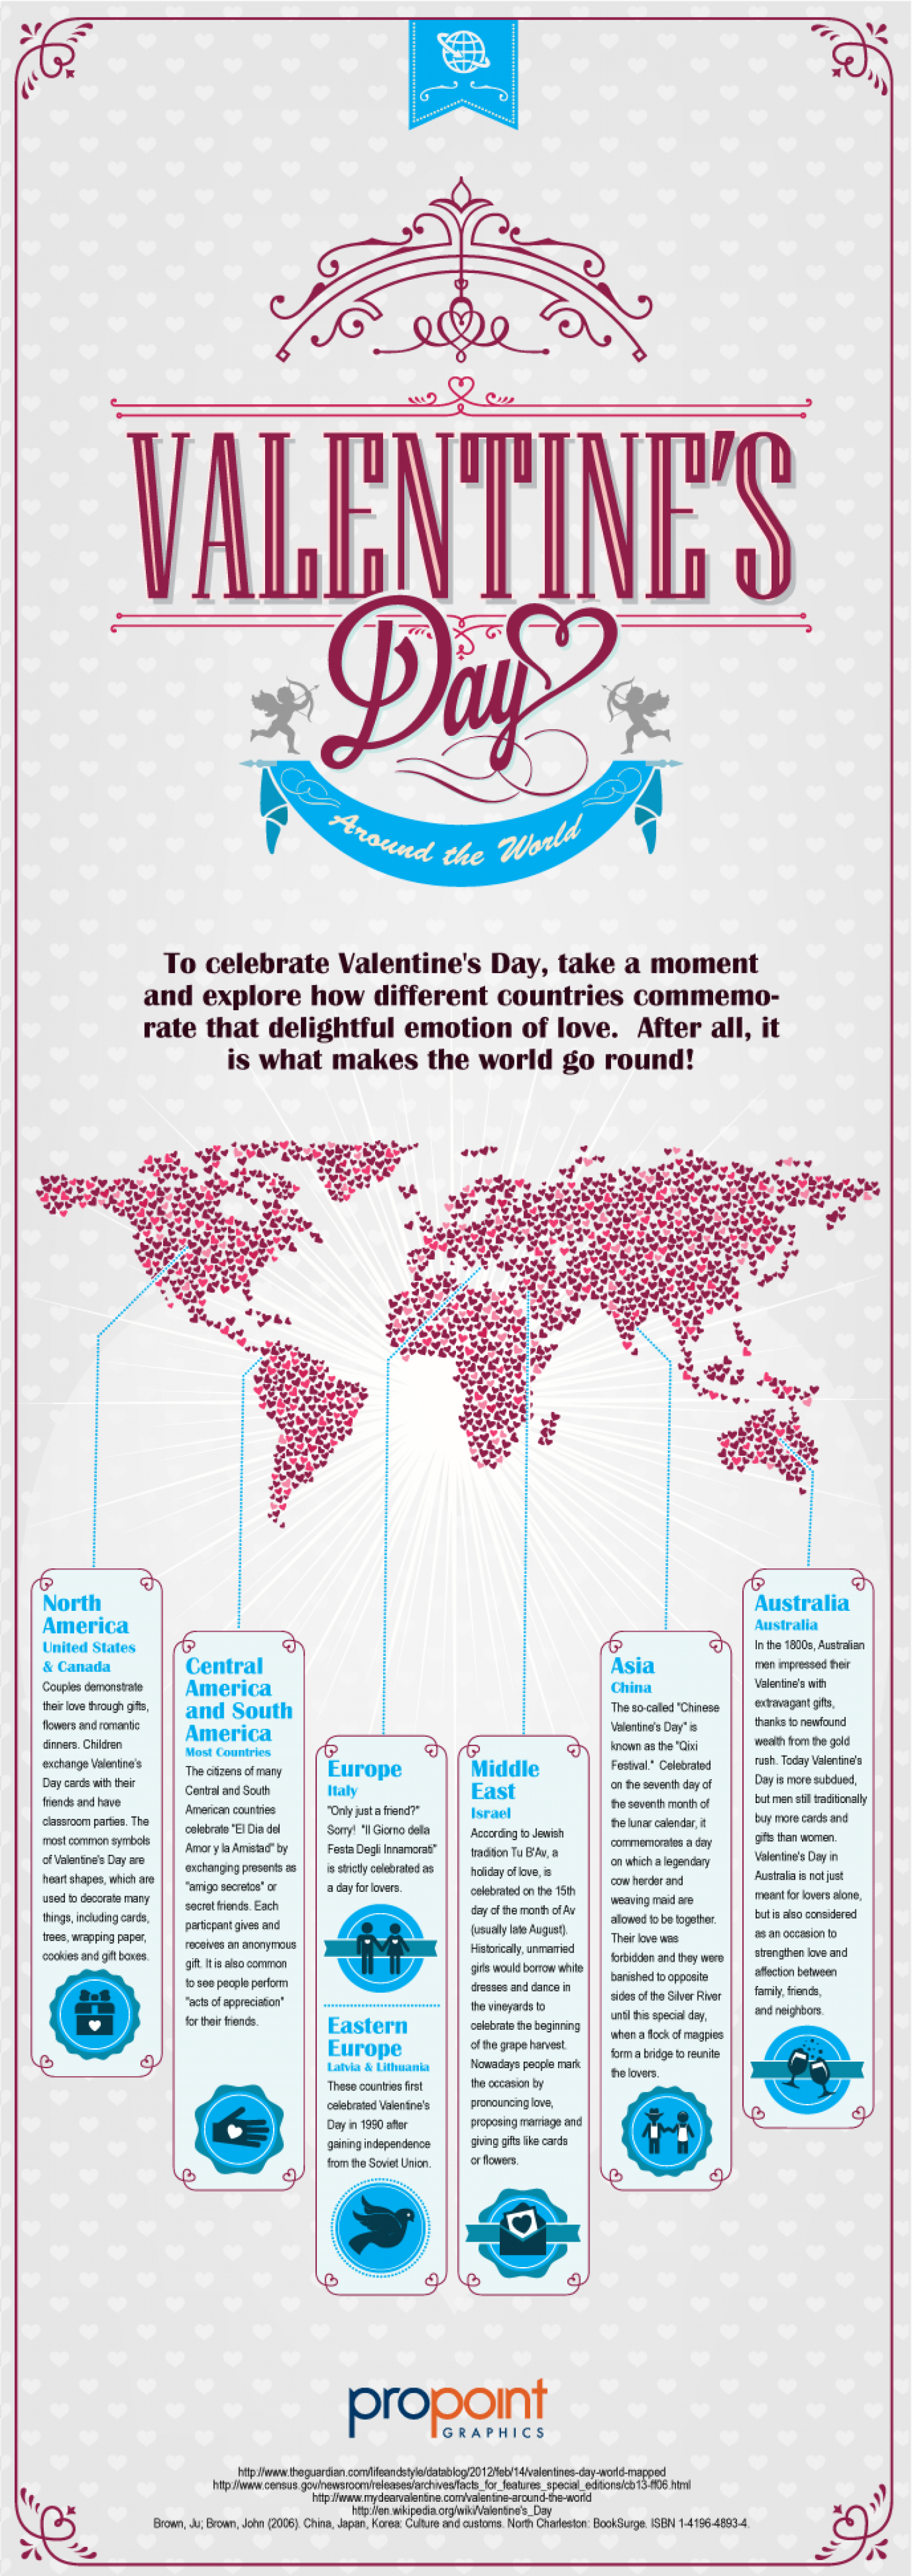 Valentine's Day Around the World Infographic